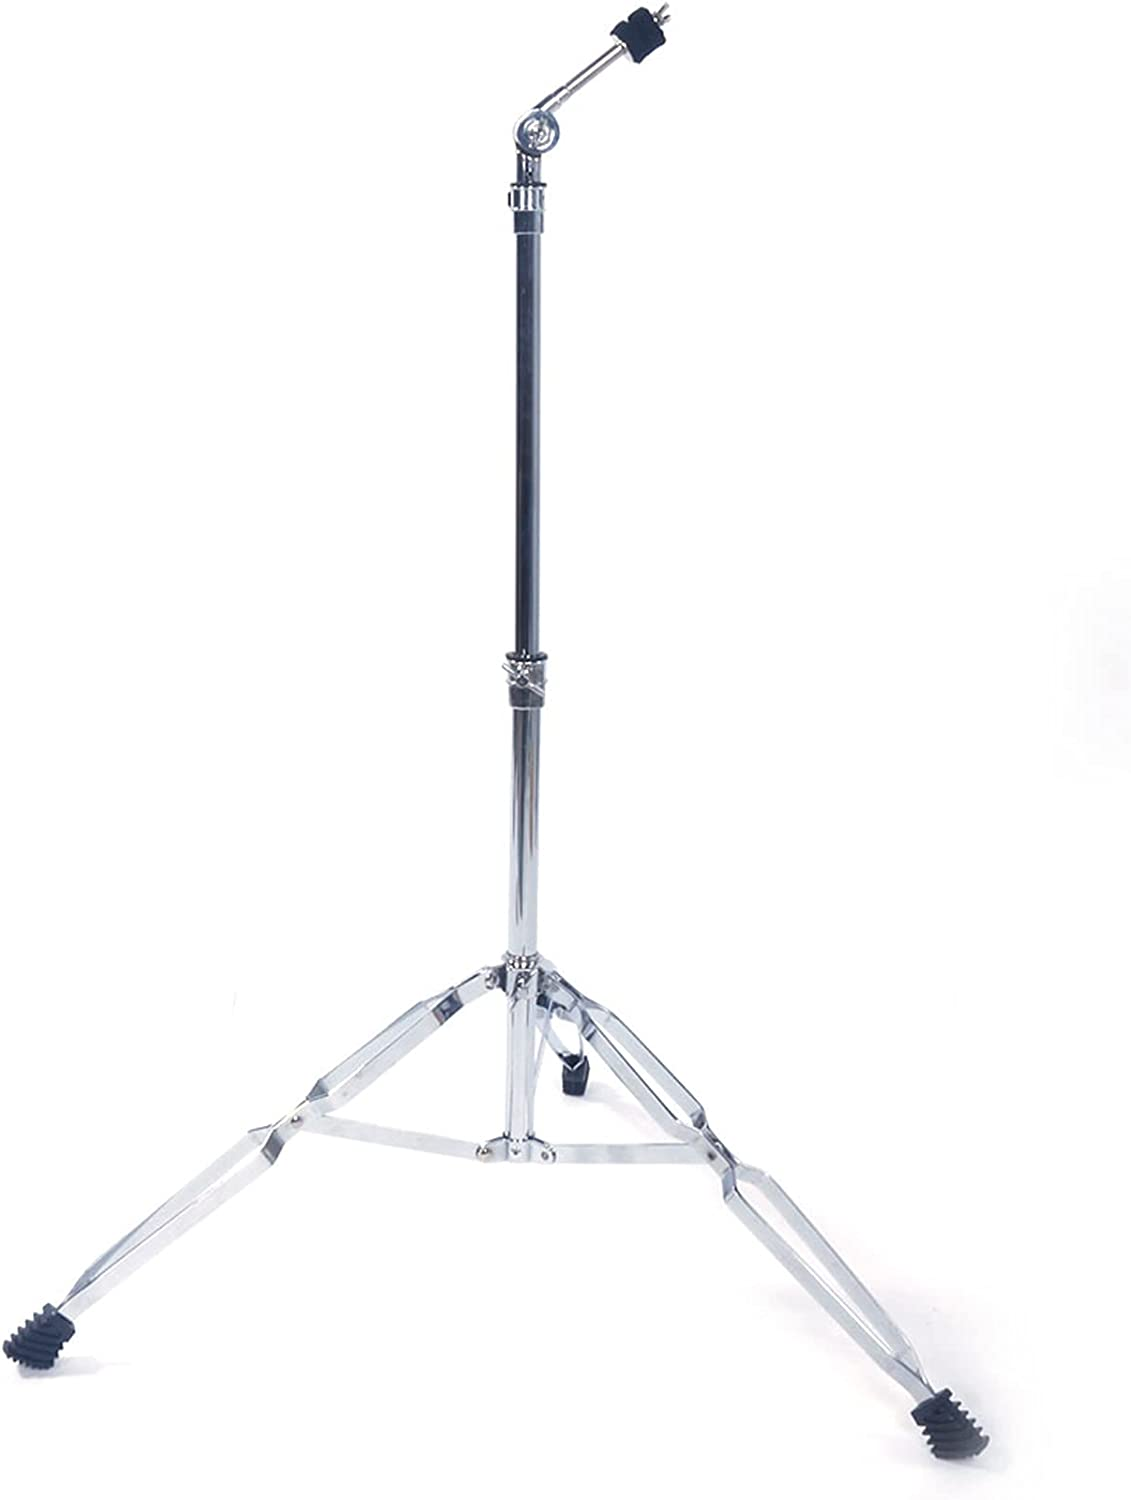 Straight Cymbal Stand Easy-to-use Drum Hardware Mount Max 44% OFF Percussion Holder Gear